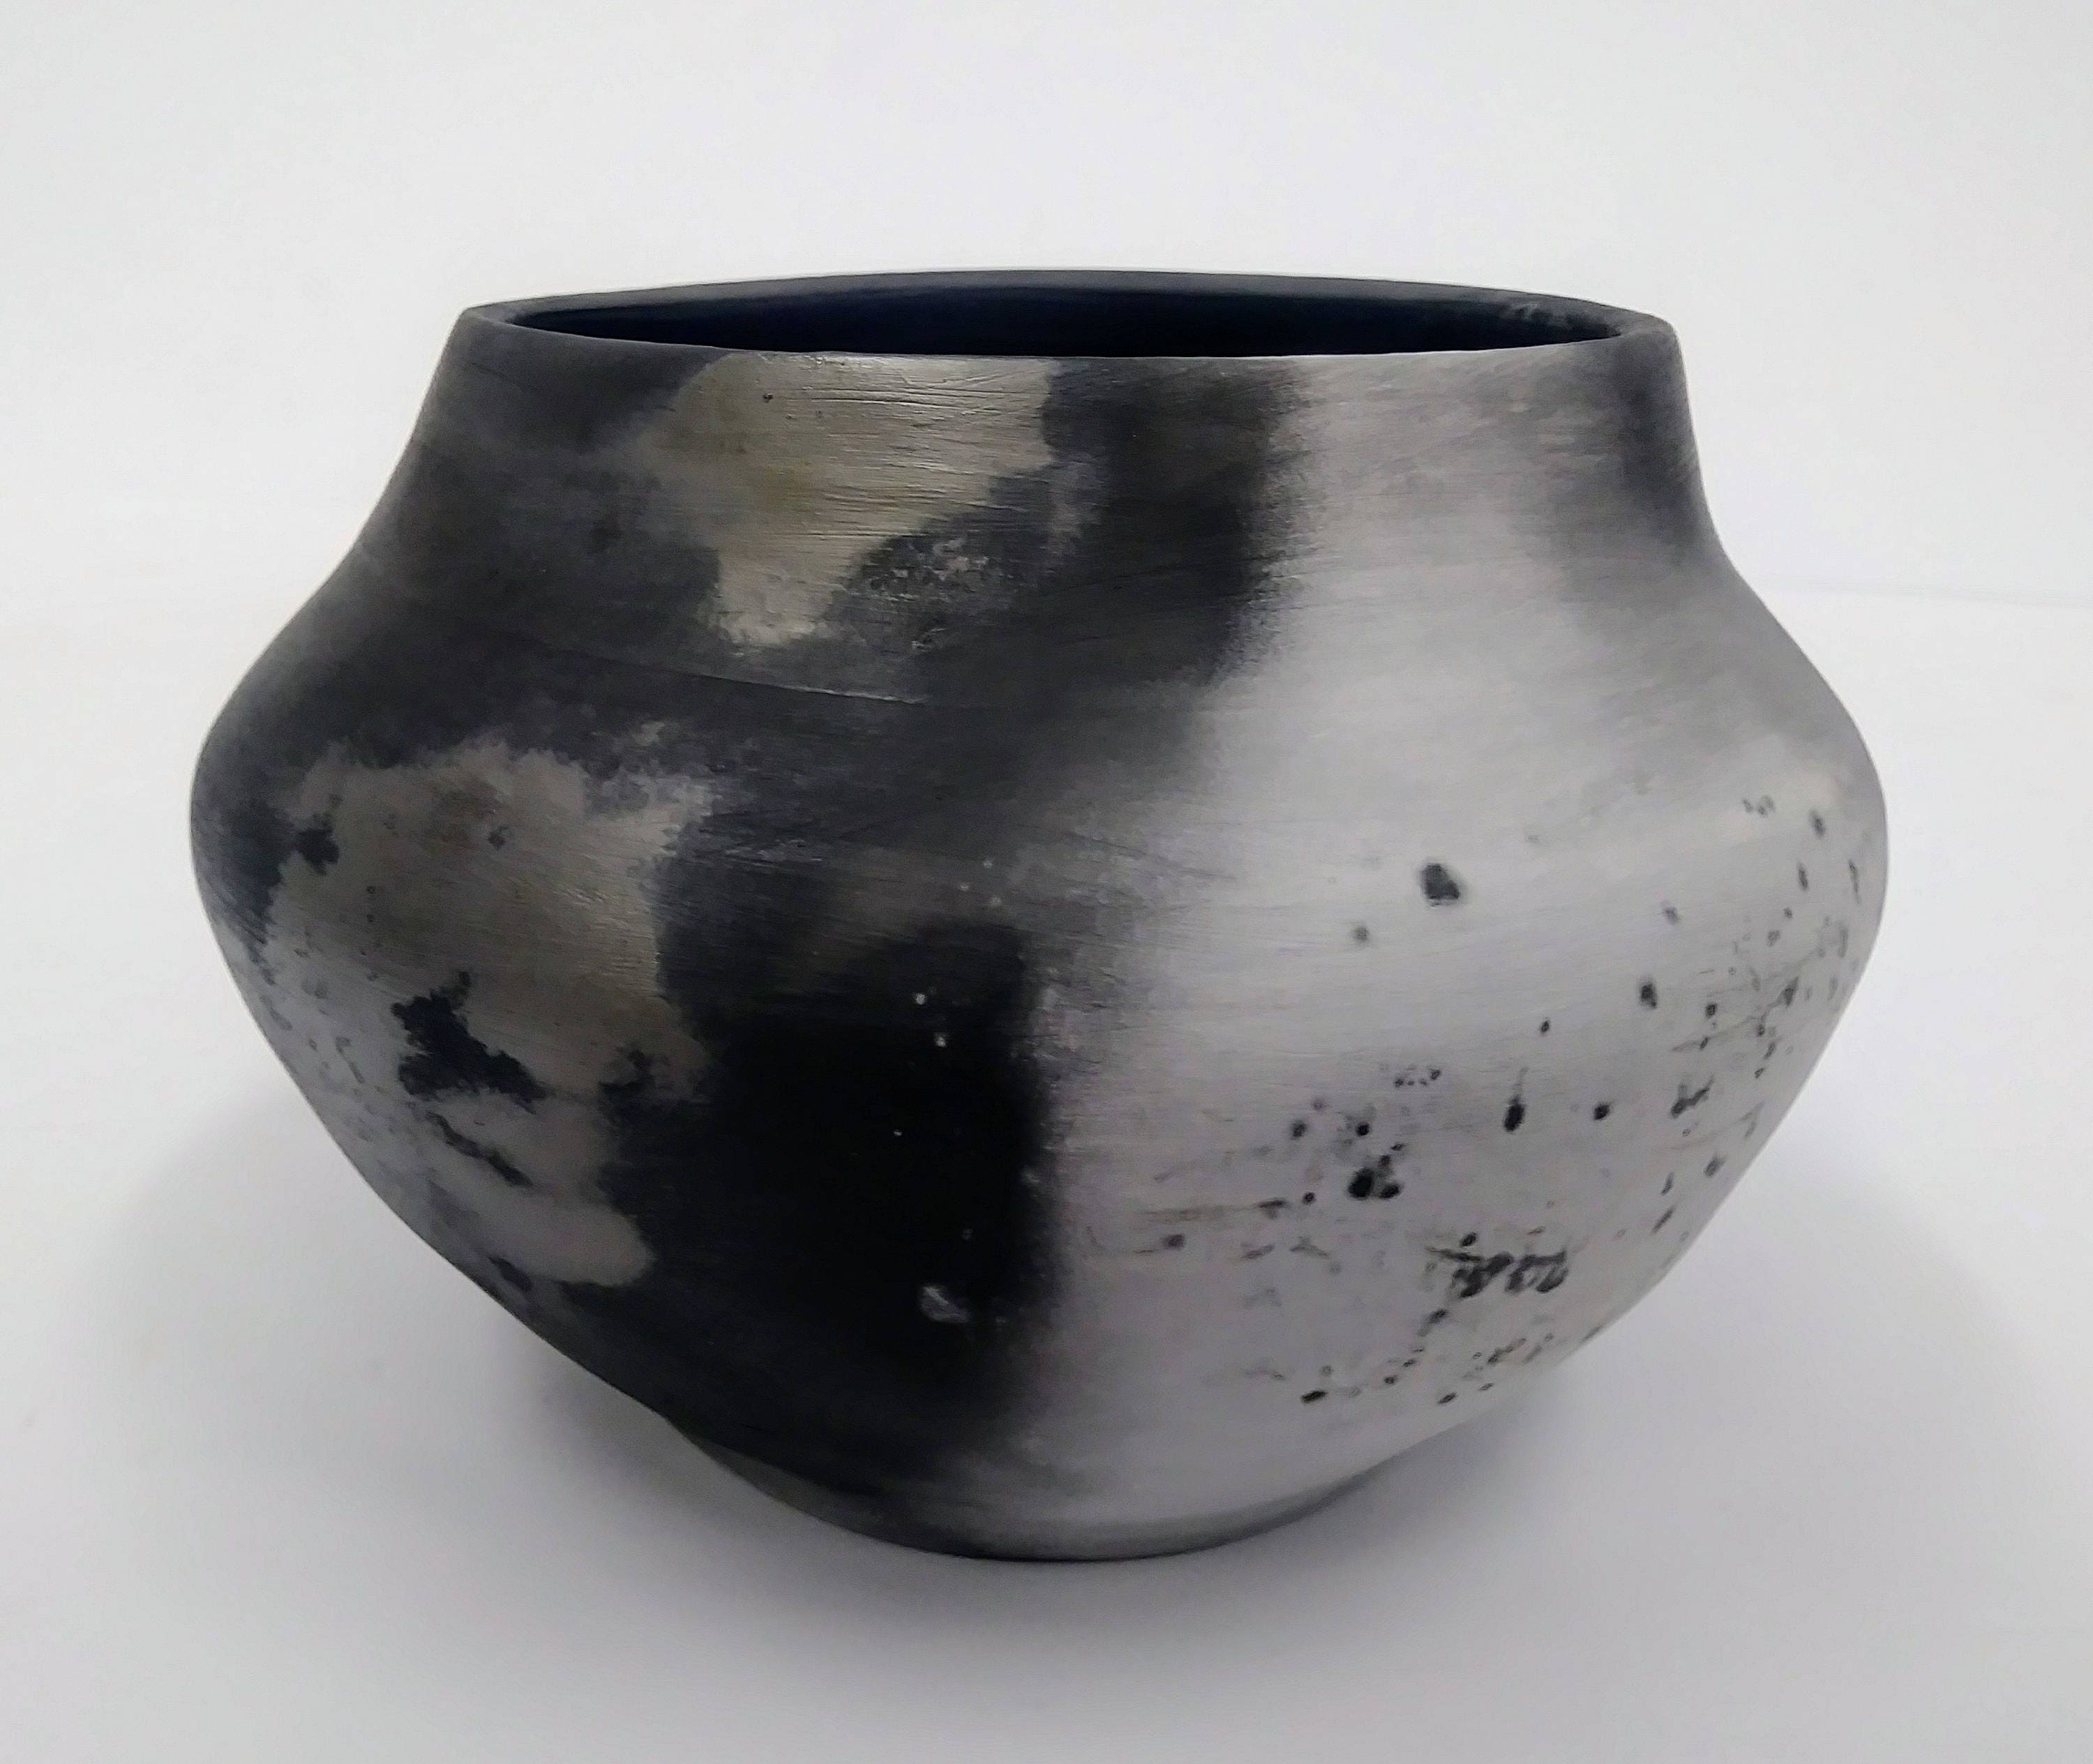 Black And White Saggar Fired Pottery Abstract Vessel Perfect For